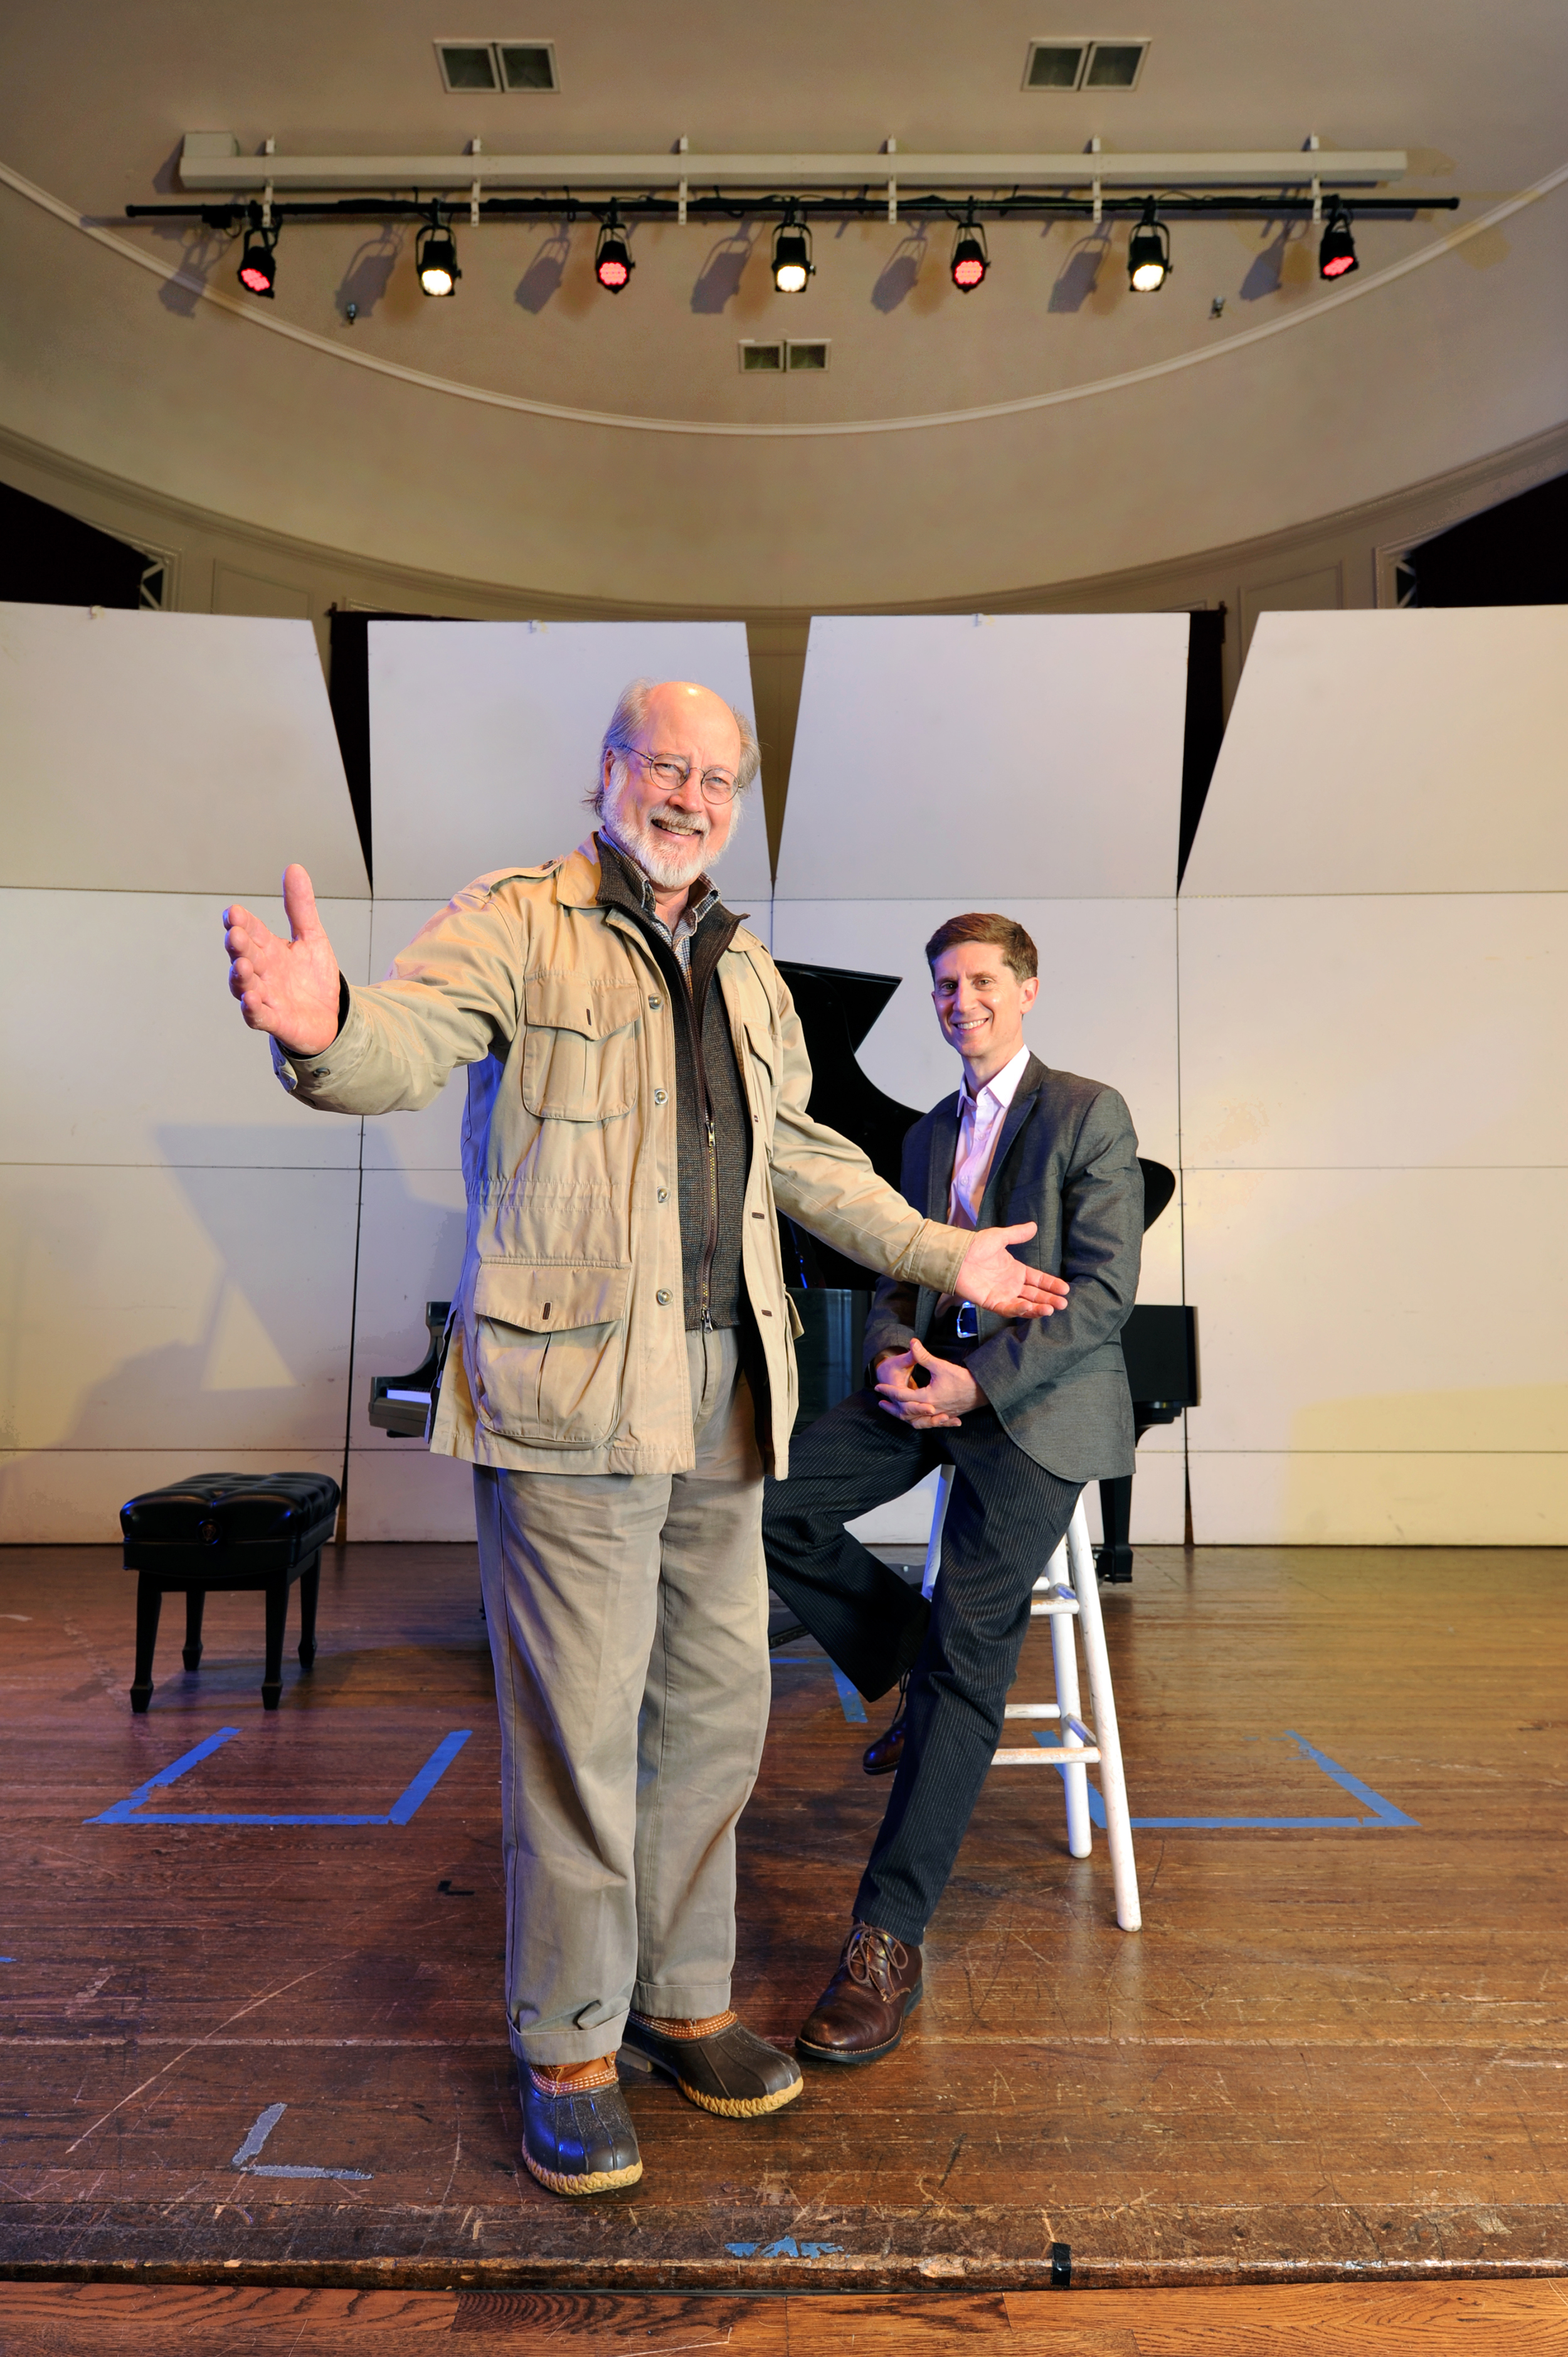 Simpson (foreground) with Katz (seated). Katz calls popular music classes 'relevant, substantive and meaningful.' (photo by Donn Young)